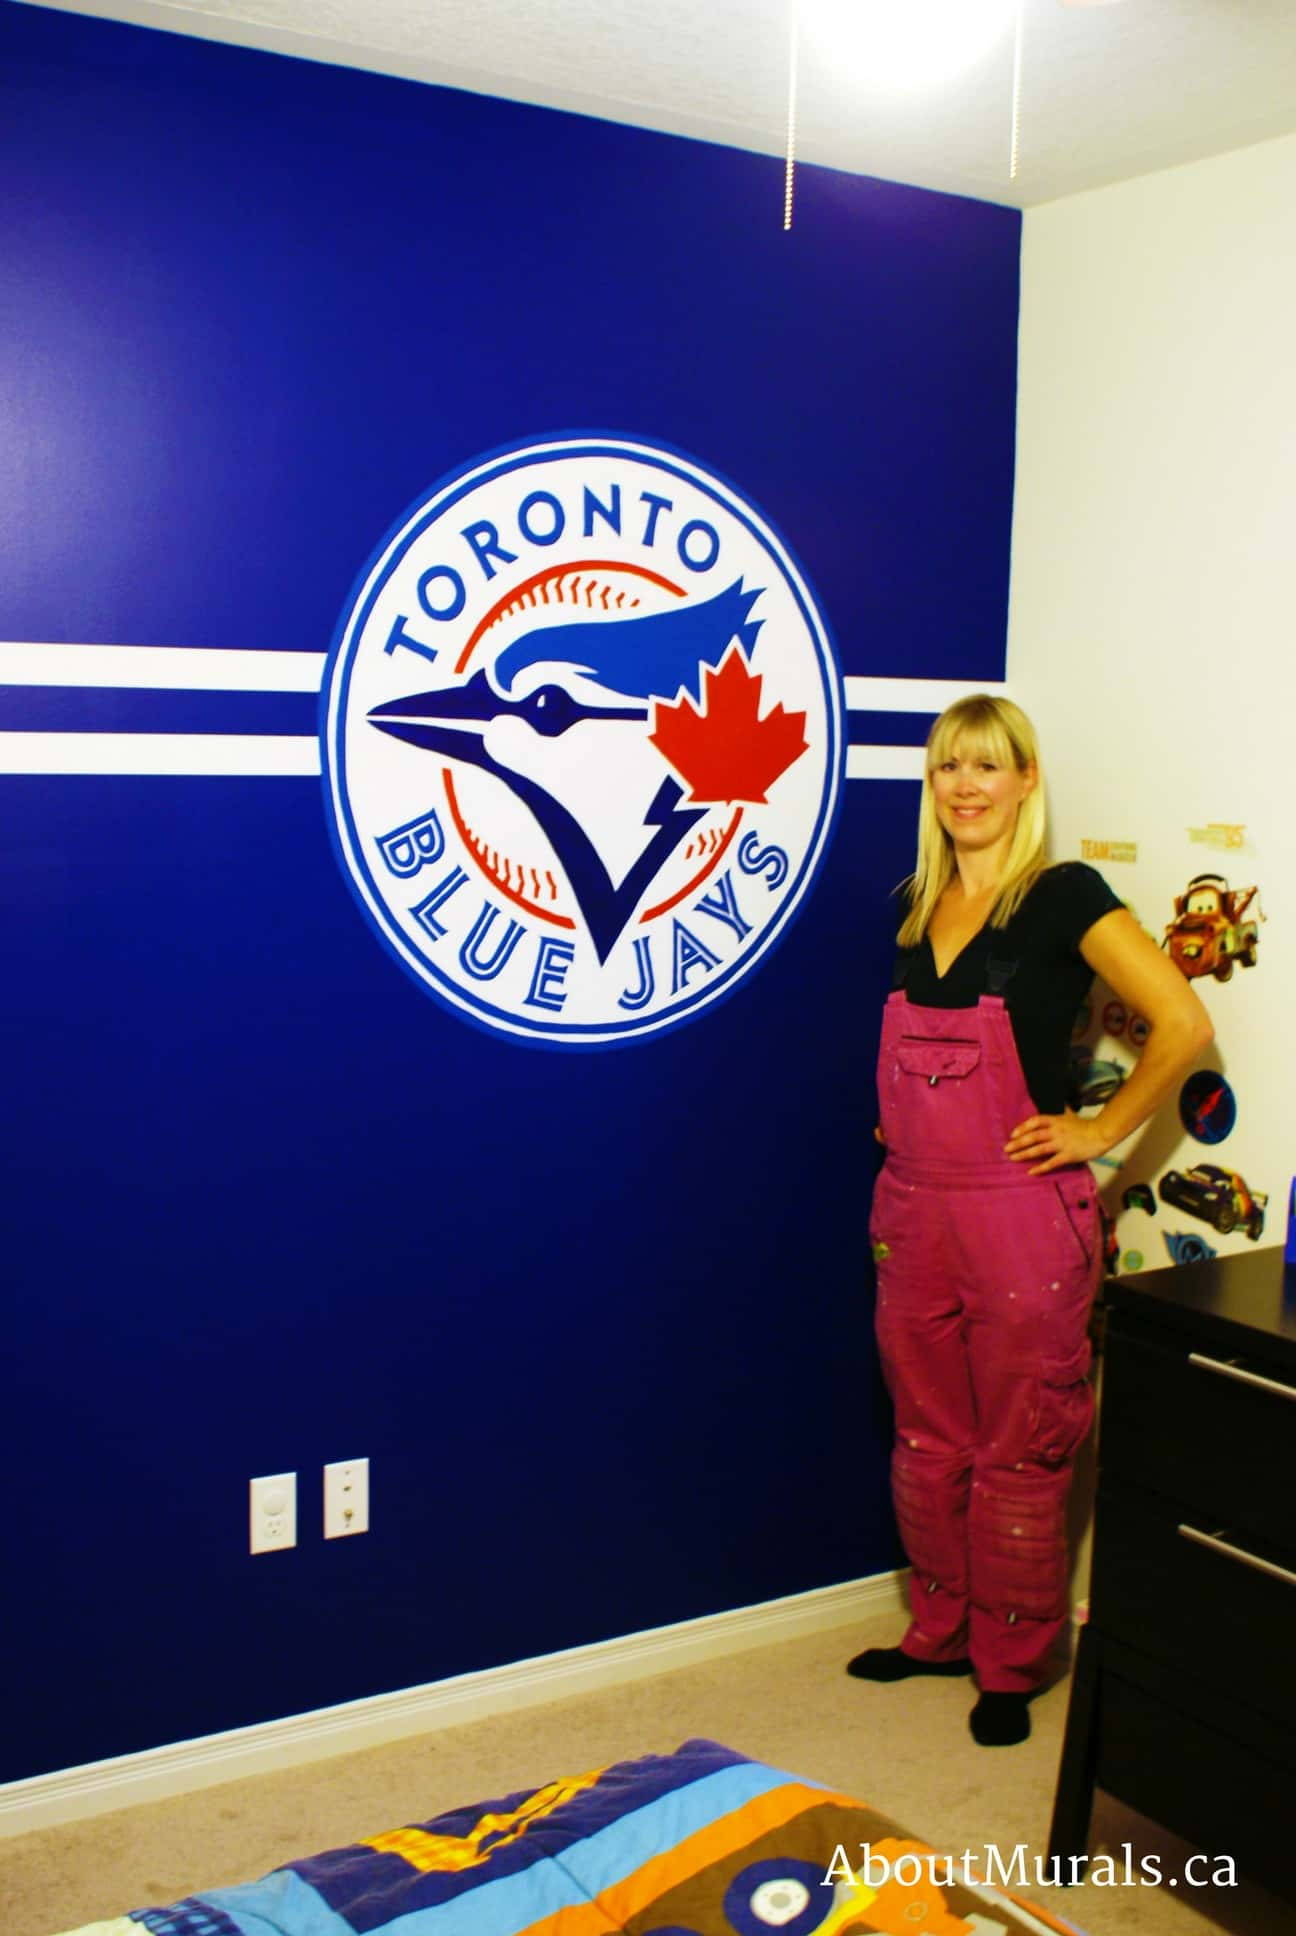 A blue jays wall painted by muralist Adrienne of AboutMurals.ca, who is standing next to the mural